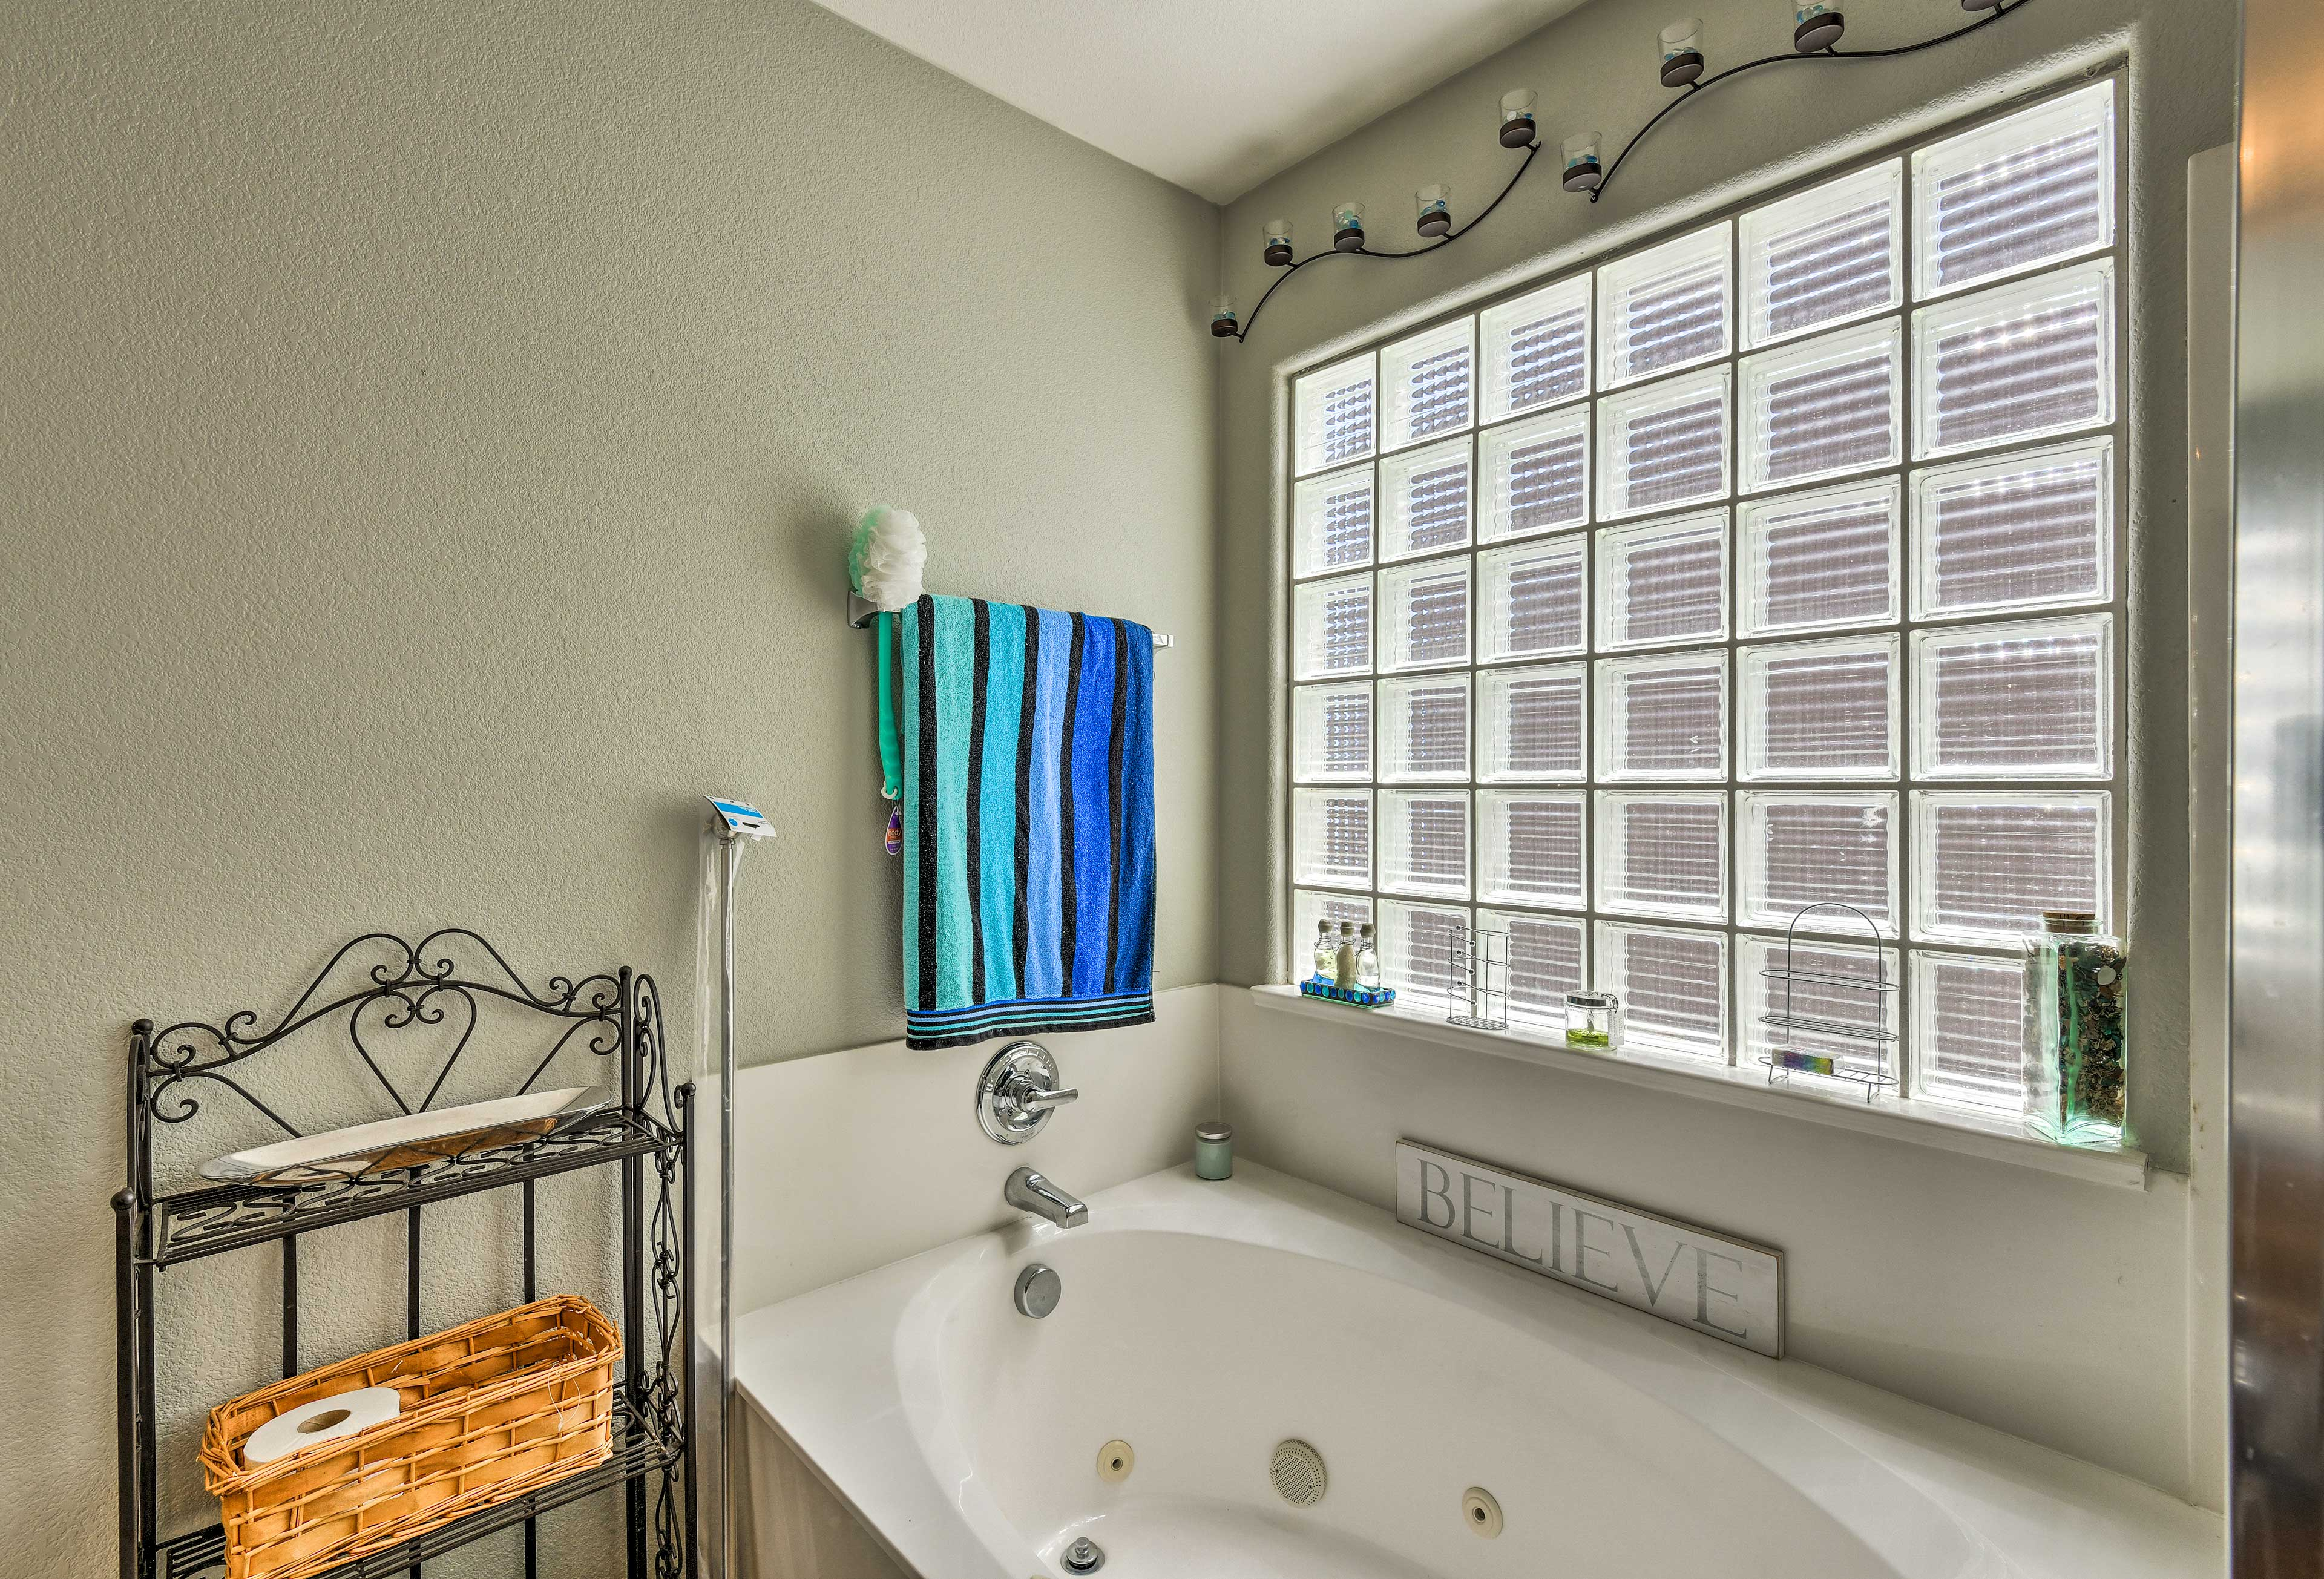 Rinse off in your private Jacuzzi before climbing under the covers!